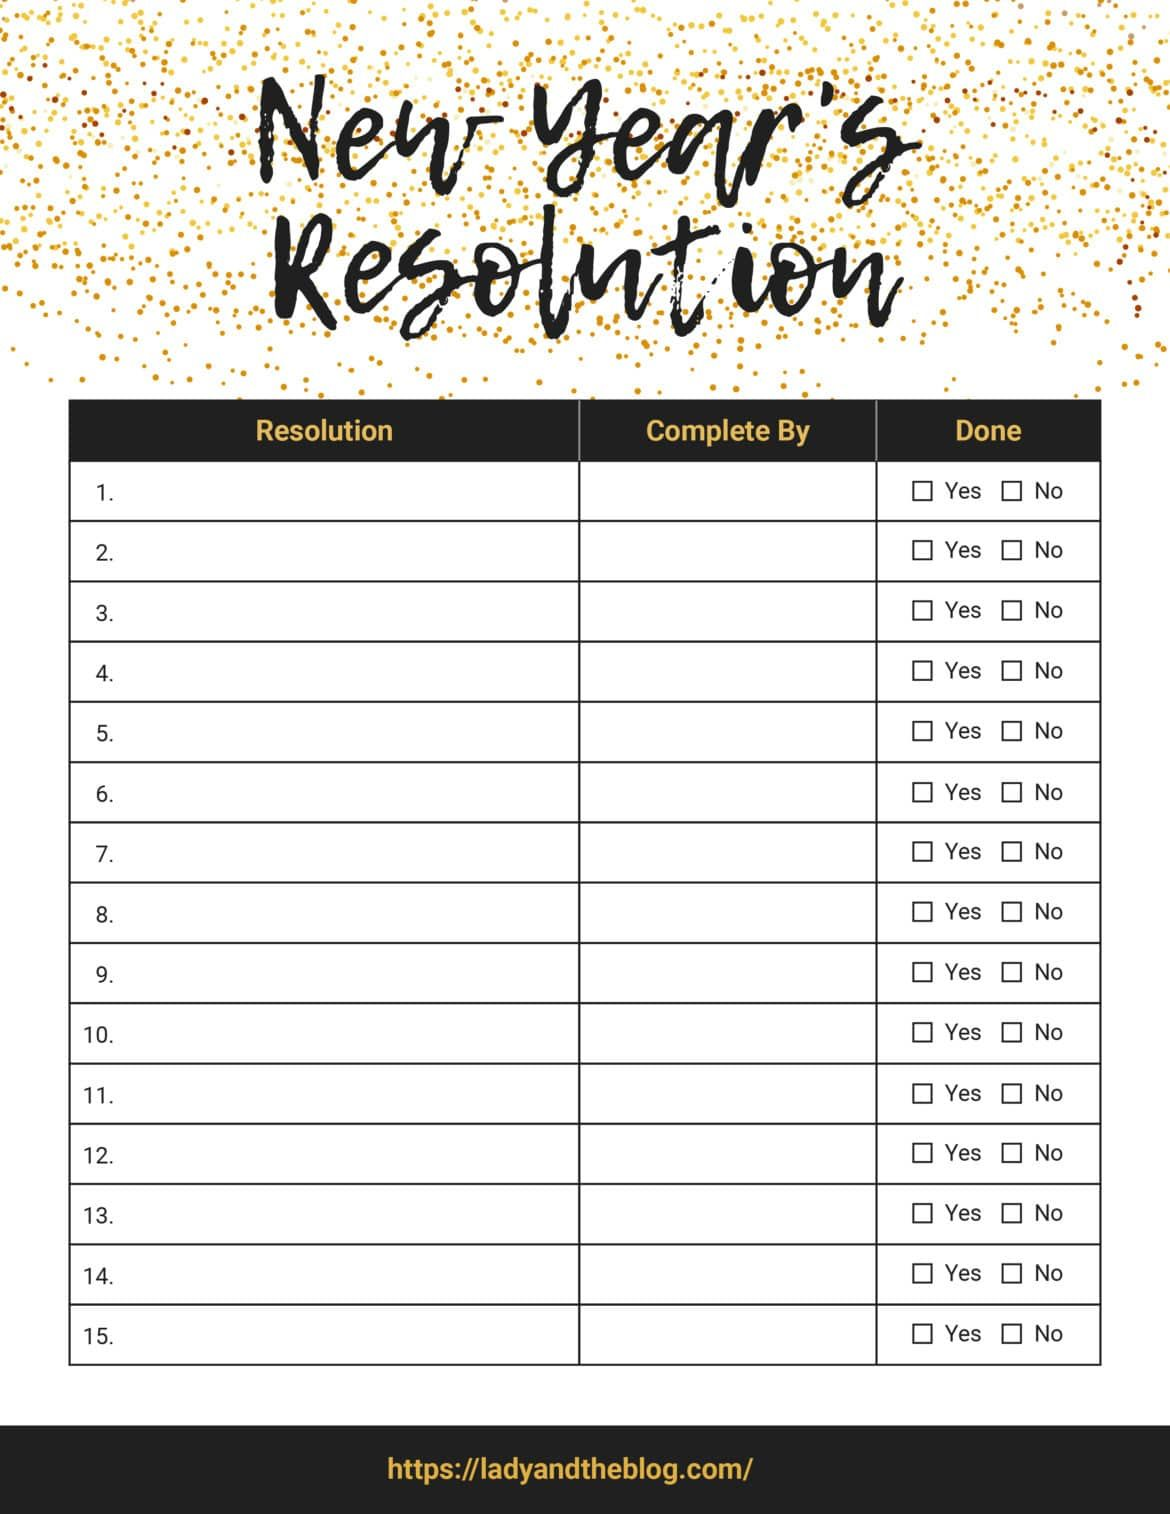 New Year's Resolution List Free Promise Printable Here